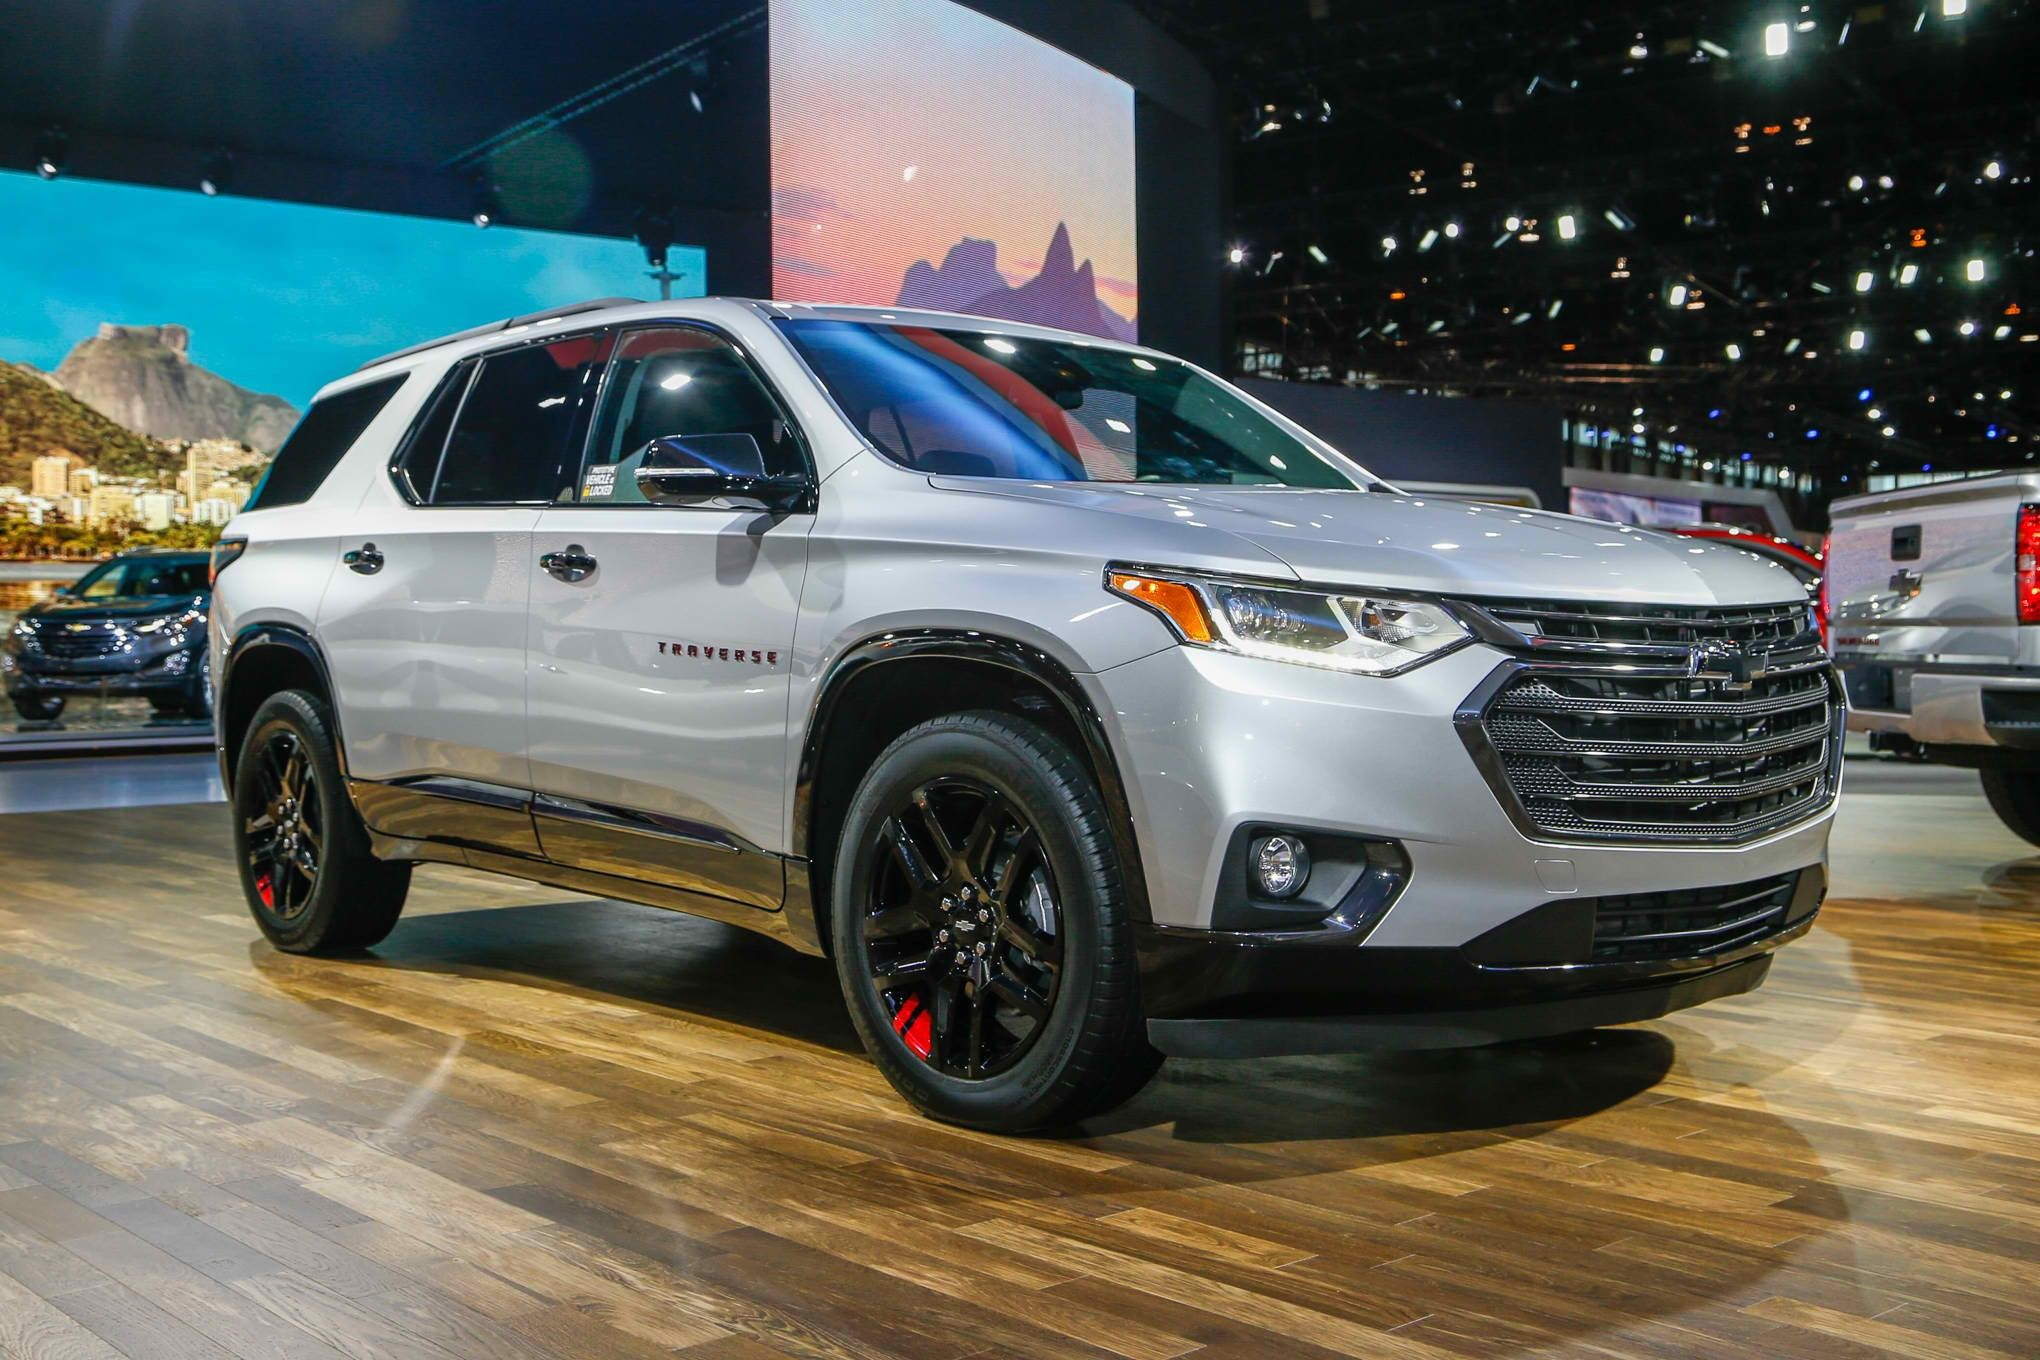 2019 Chevrolet Traverse High Country Awd Check More At Http Www New Cars Club 2017 06 30 2019 Chevrolet Traverse High Country Awd